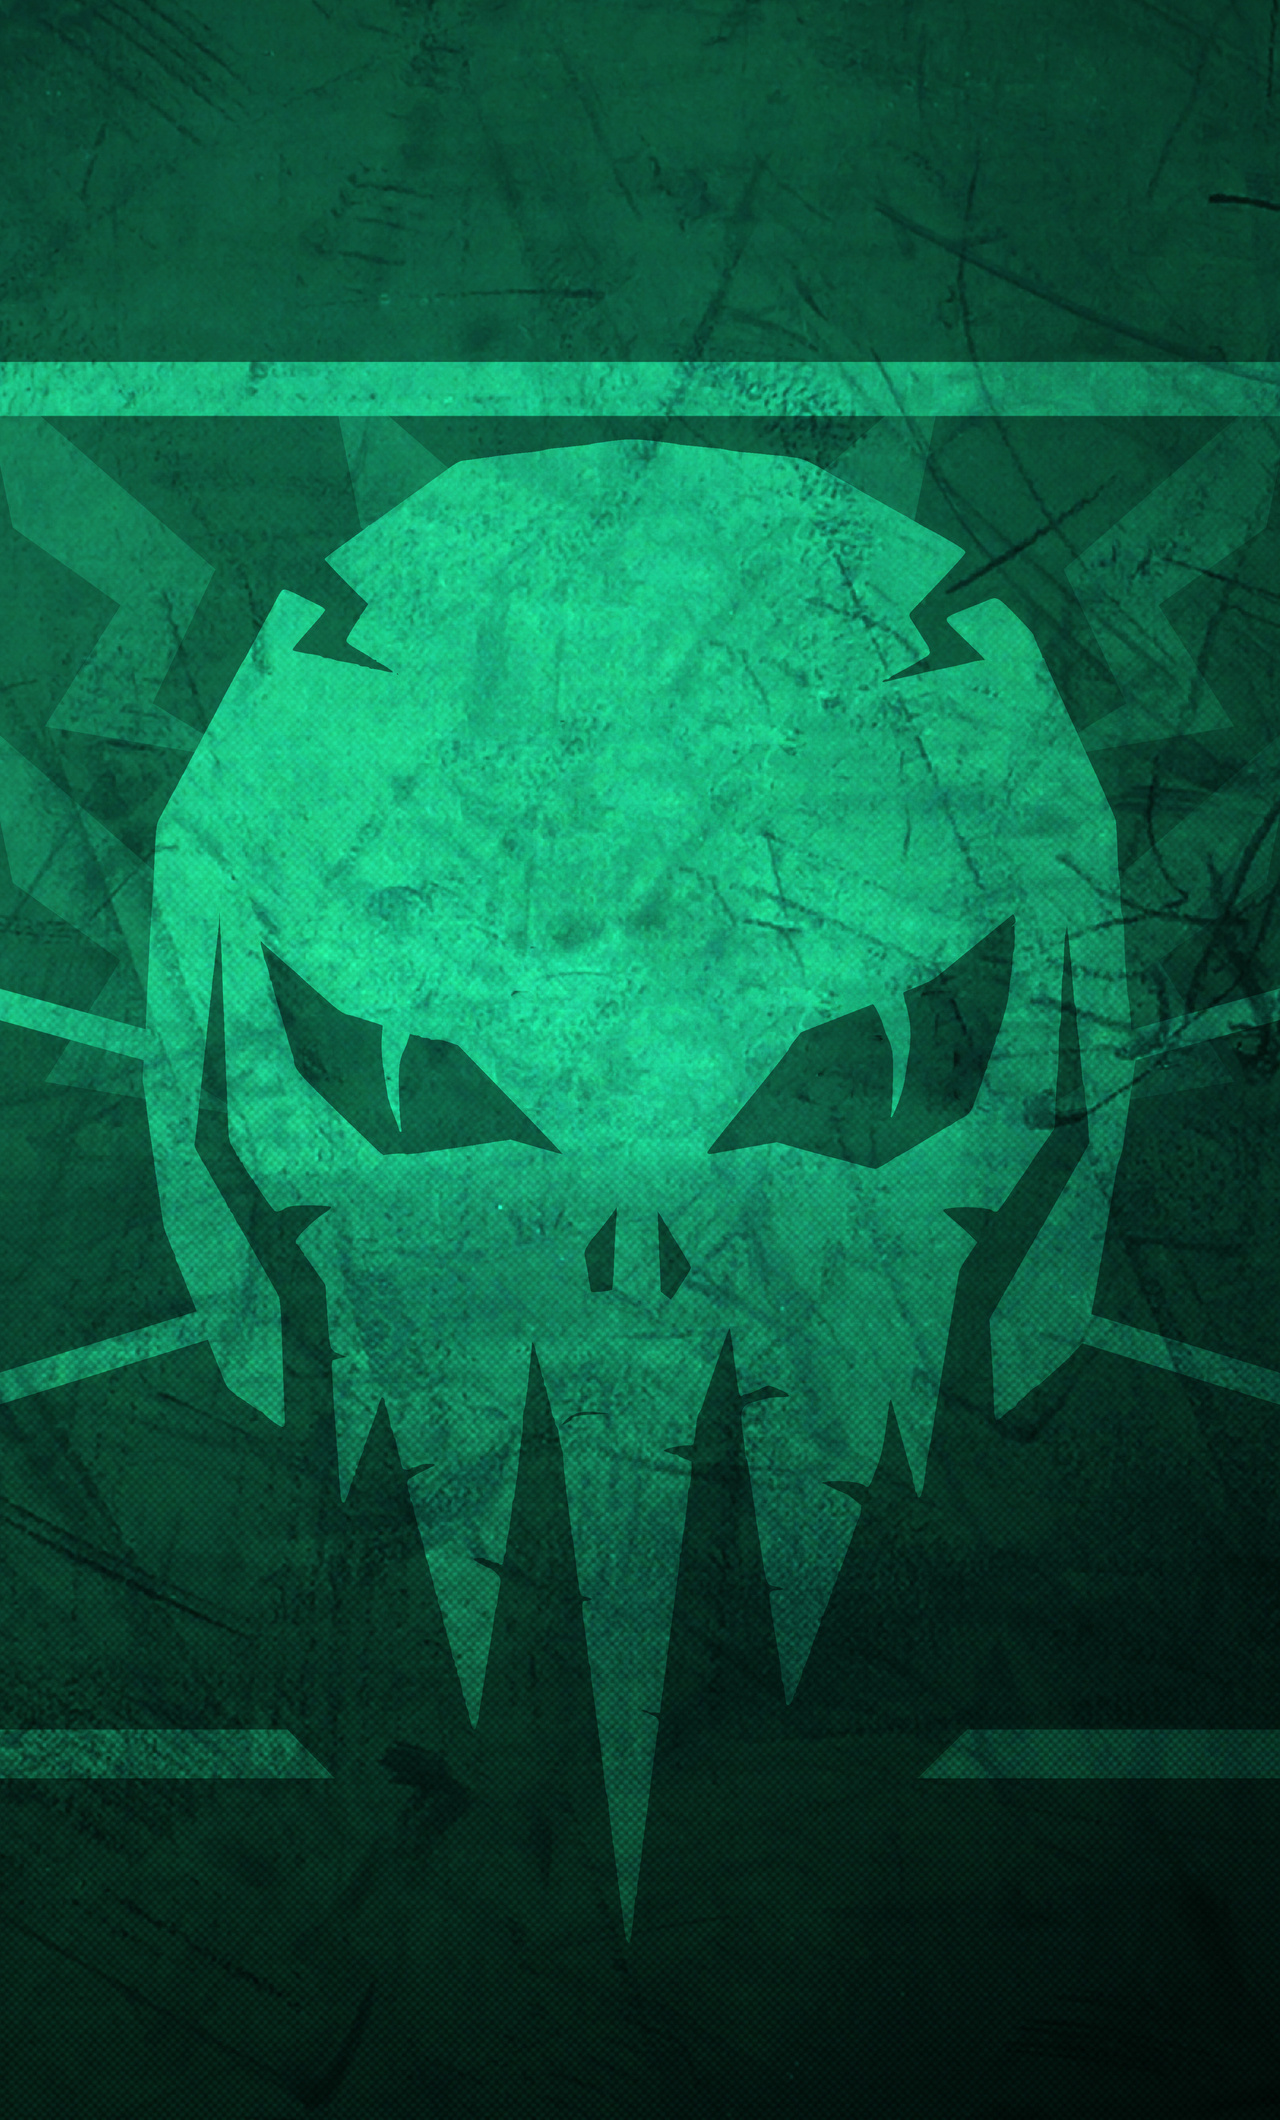 tom-clancys-rainbow-six-siege-skull-fan-art-10.jpg